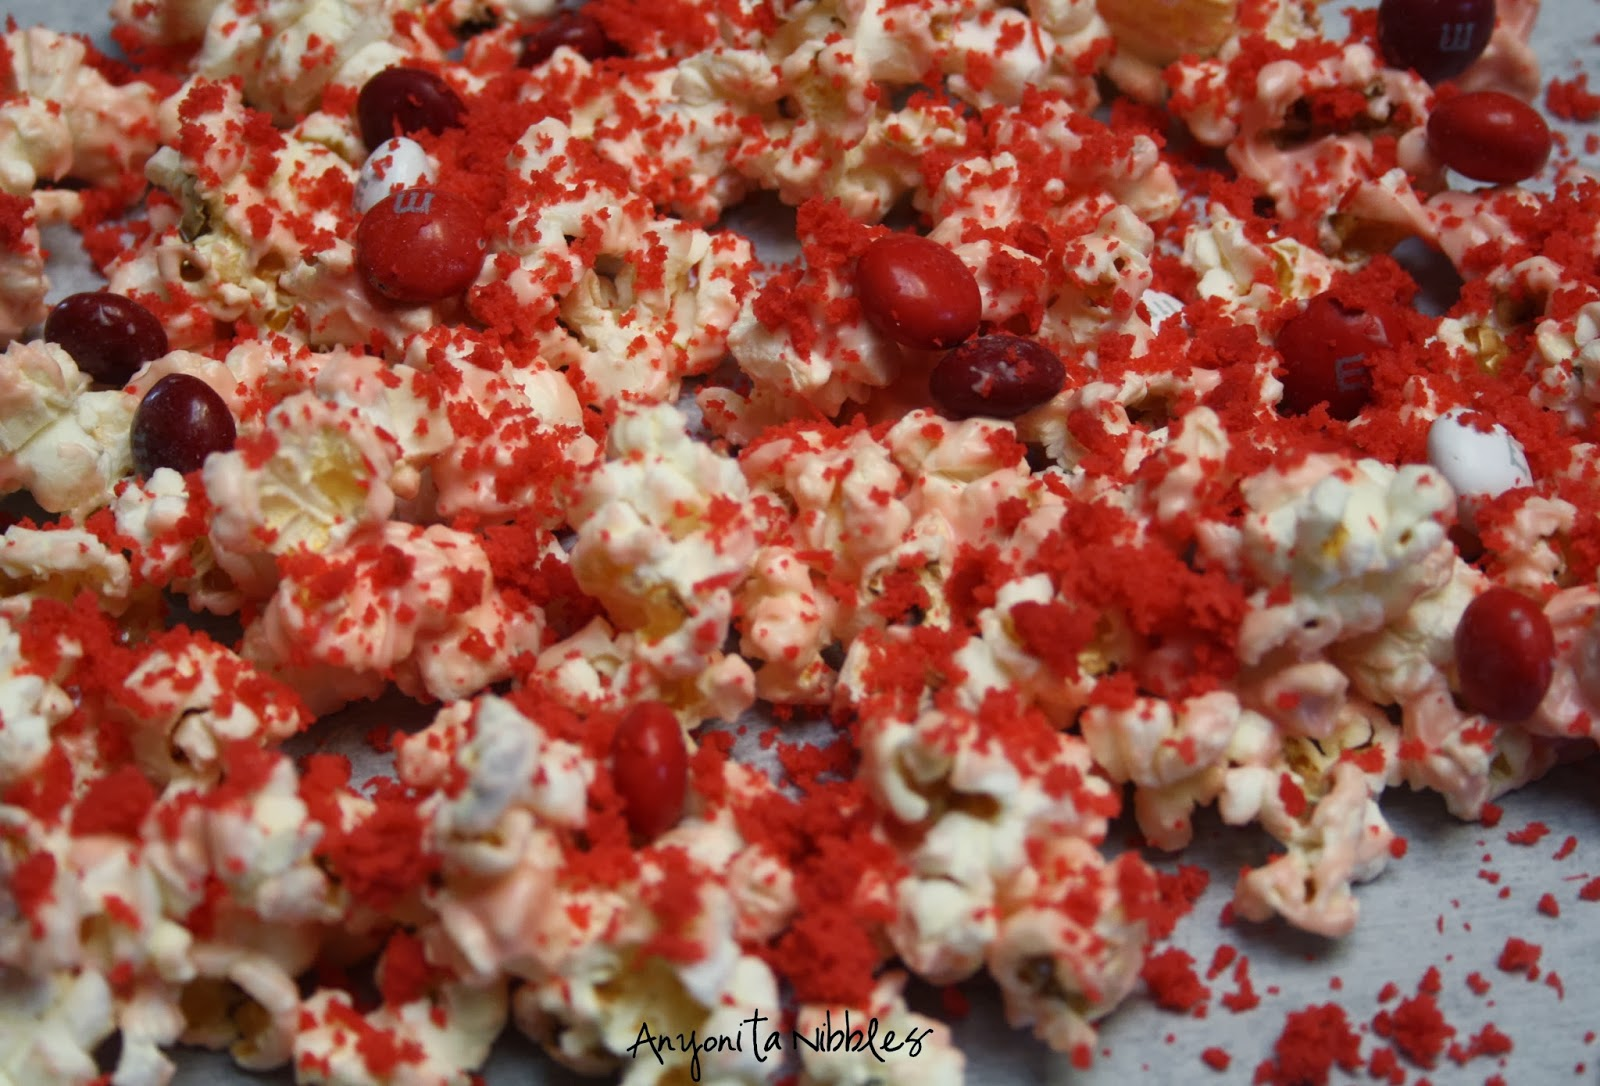 Valentine's Red Velvet Popcorn from www.anyonita-nibbles.co.uk